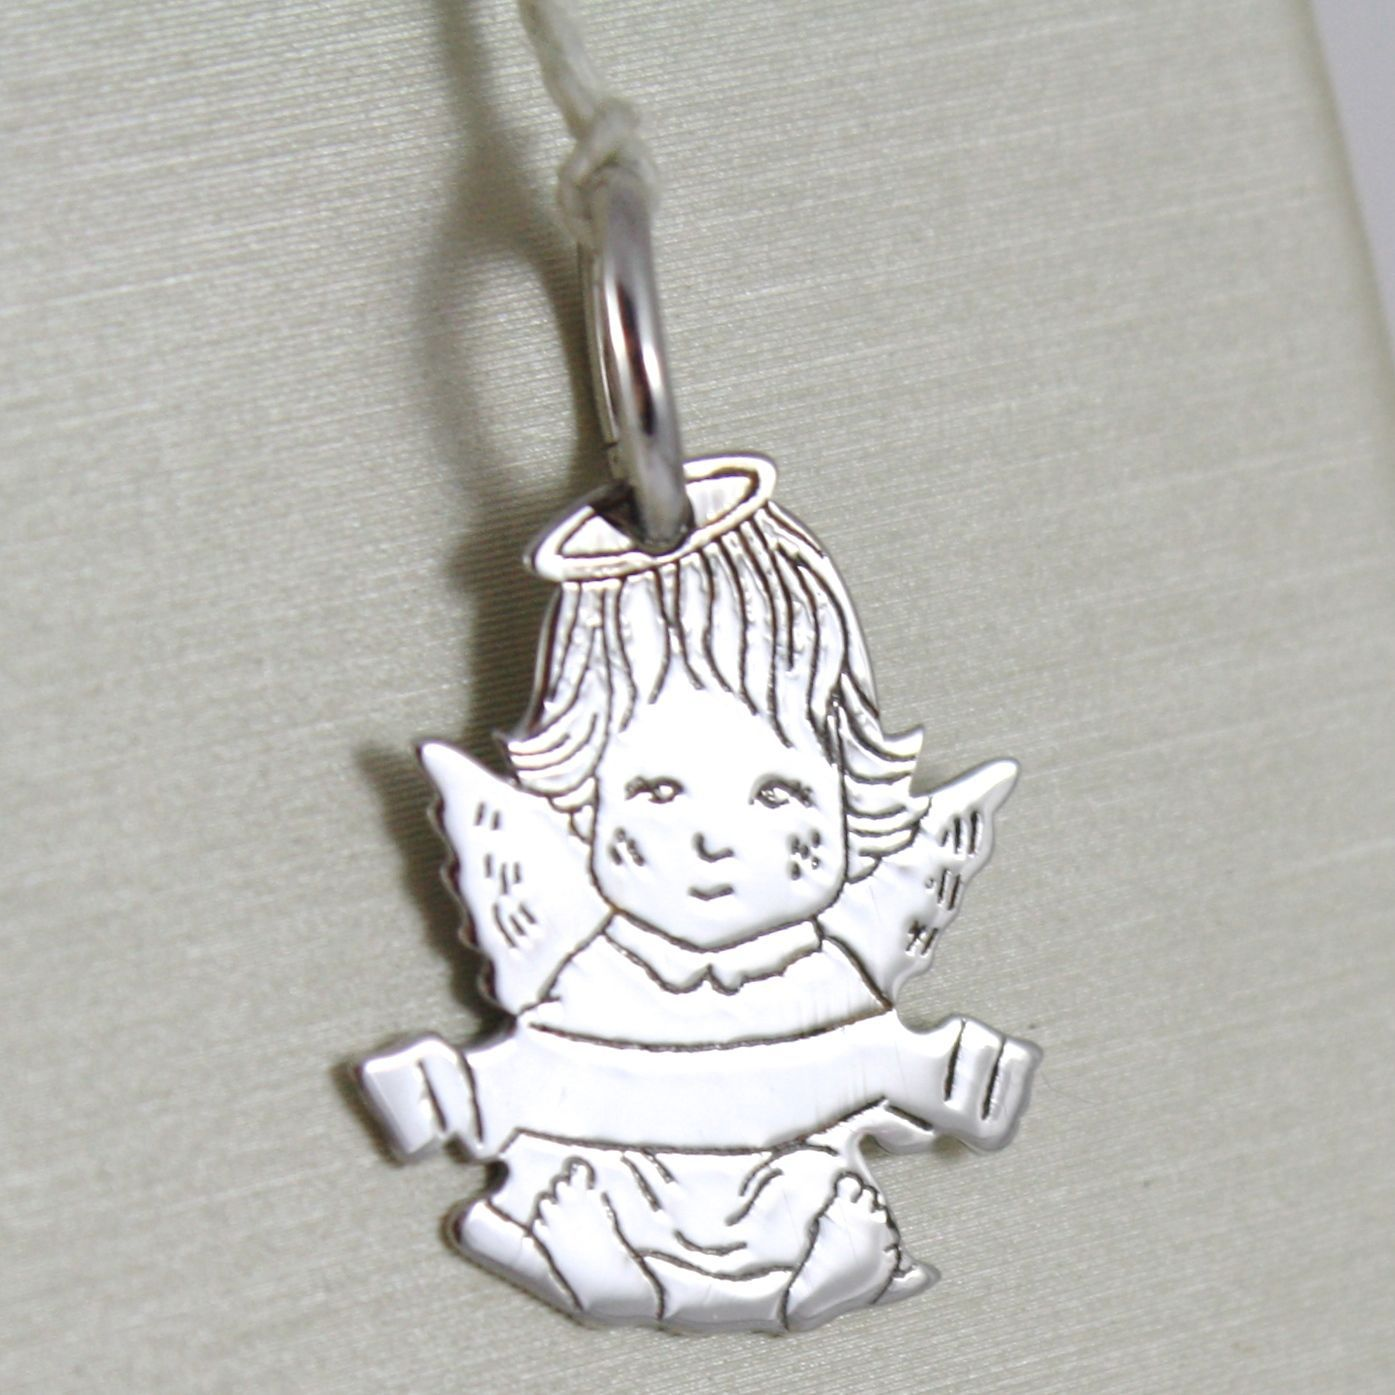 PENDANT WHITE GOLD 750 18K ANGEL GUARDIAN, FEMALE, INCISION NAME PARCHMENT